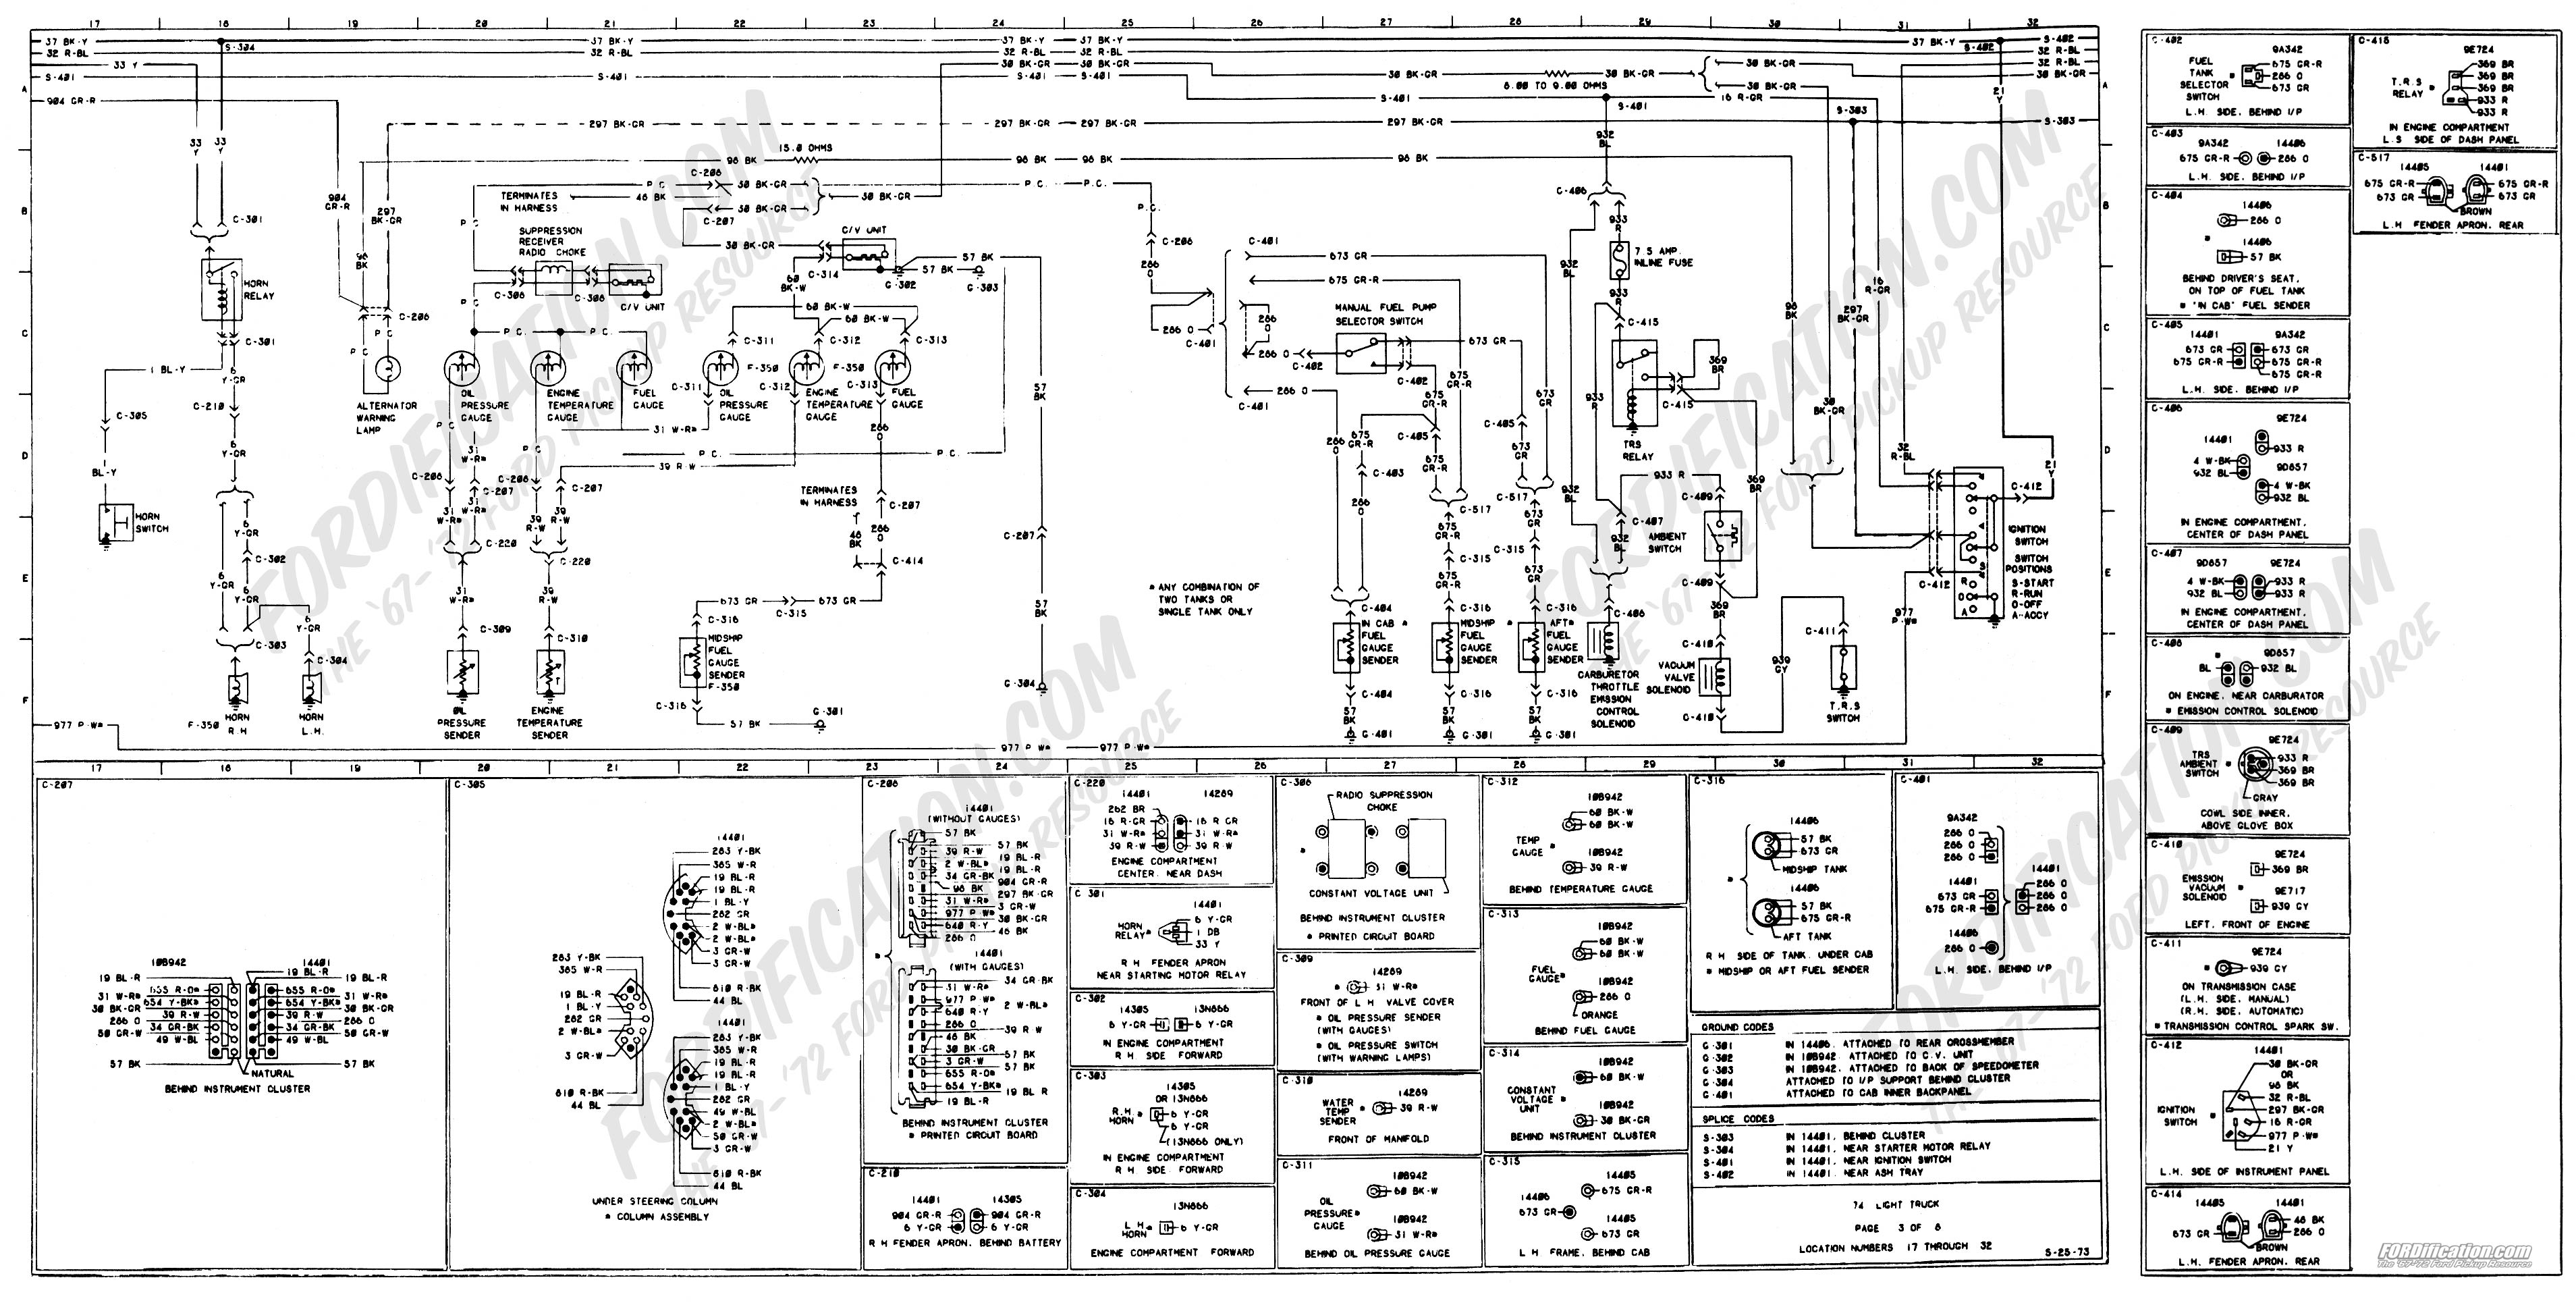 2002 ford truck alternator wiring trusted schematics diagram rh propeller  sf com 1981 ford f250 wiring diagrams 1981 ford f100 alternator wiring  diagram